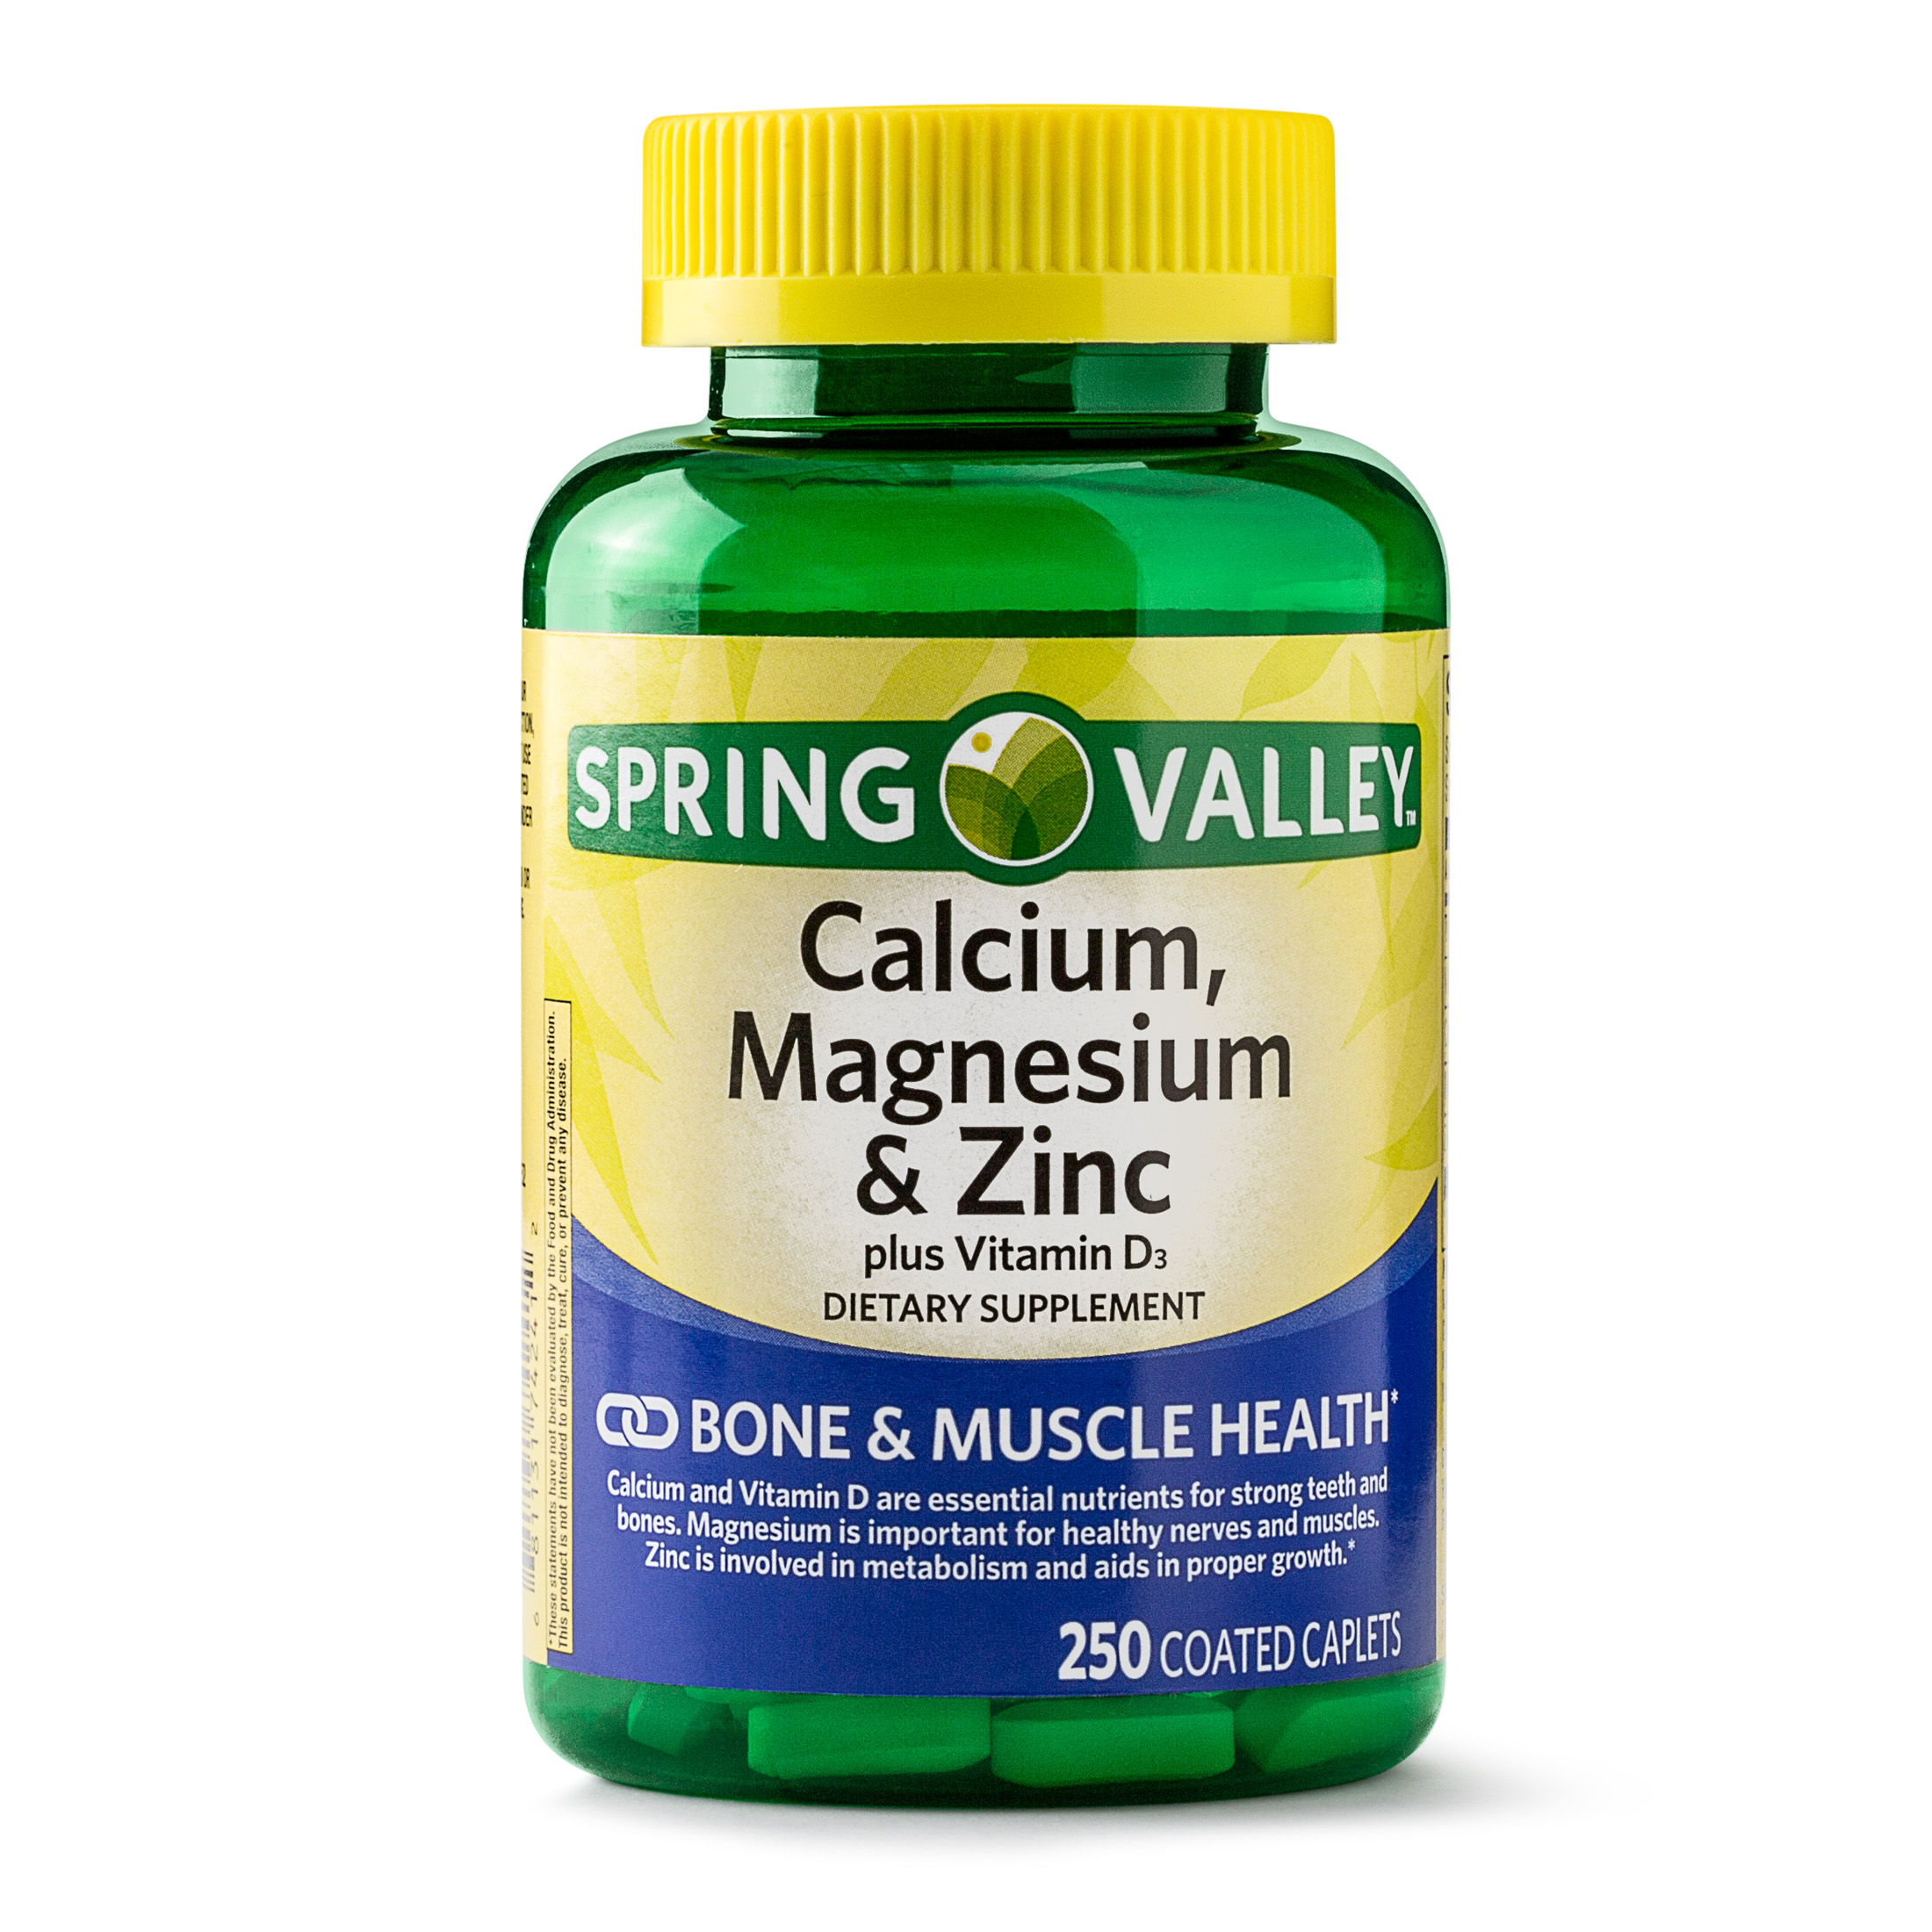 Spring Valley Calcium, Magnesium & Zinc Coated Caplets, 250 Ct